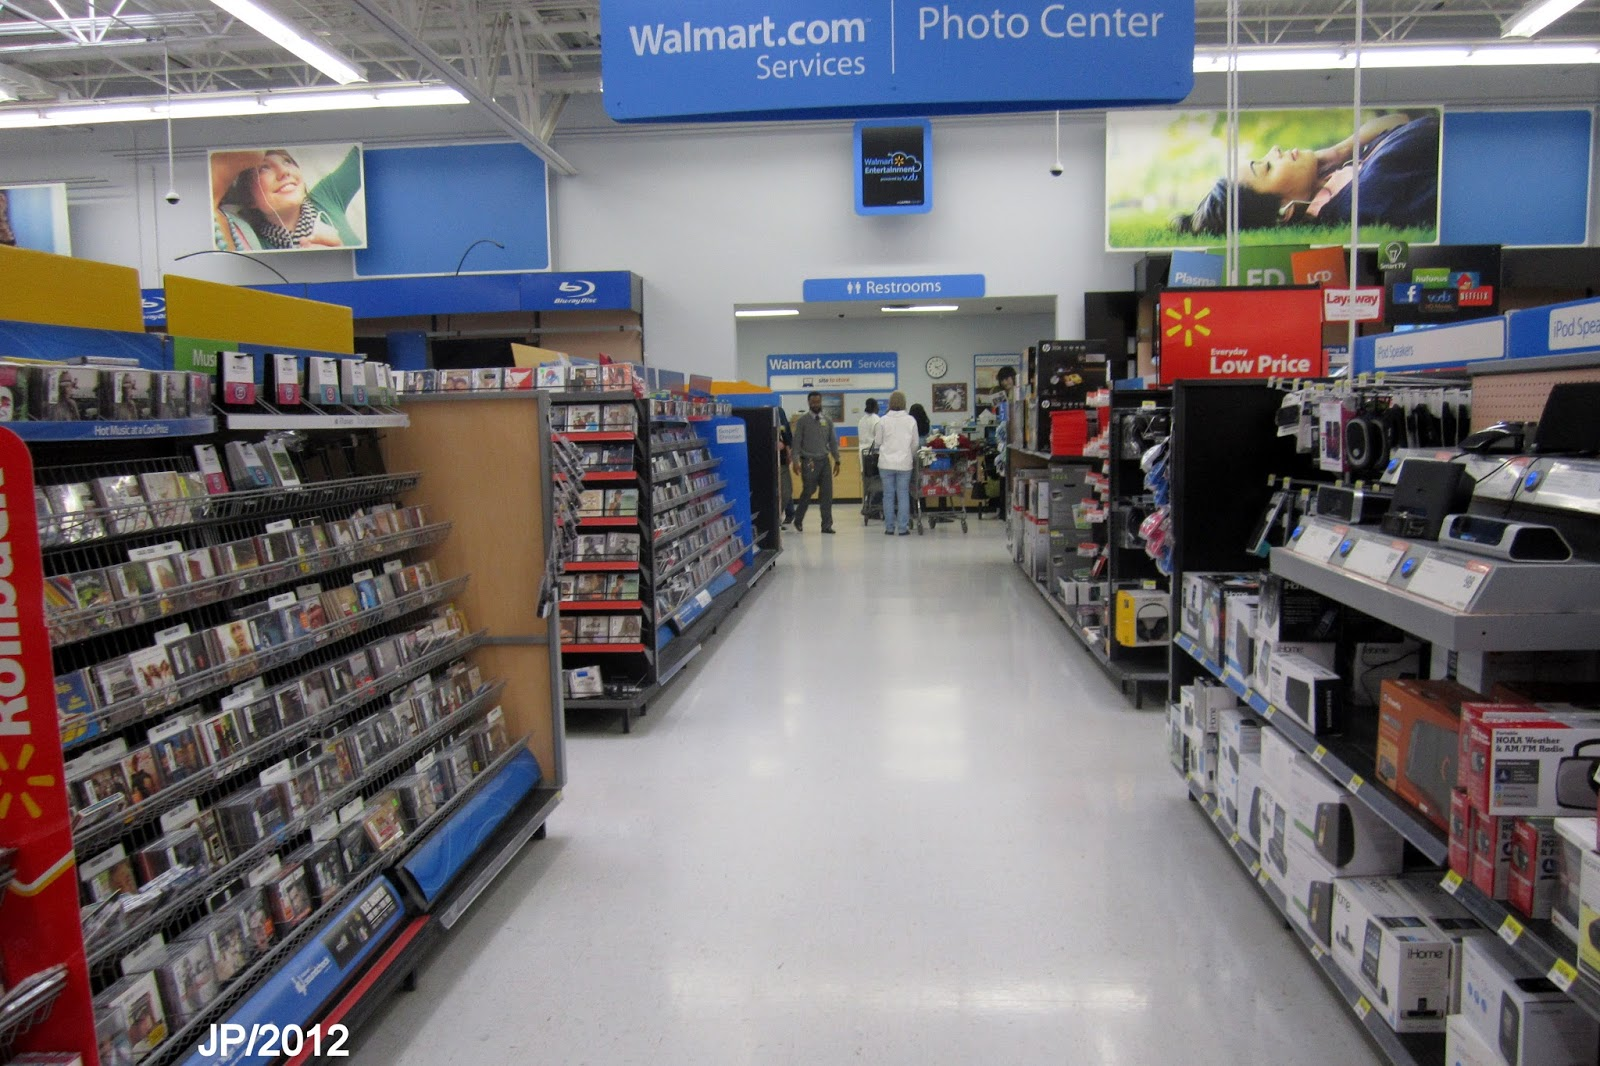 Find 83 listings related to Walmart Supercenter in East Palo Alto on appzmotorwn.cf See reviews, photos, directions, phone numbers and more for Walmart Supercenter locations in East Palo Alto, CA. Start your search by typing in the business name below.